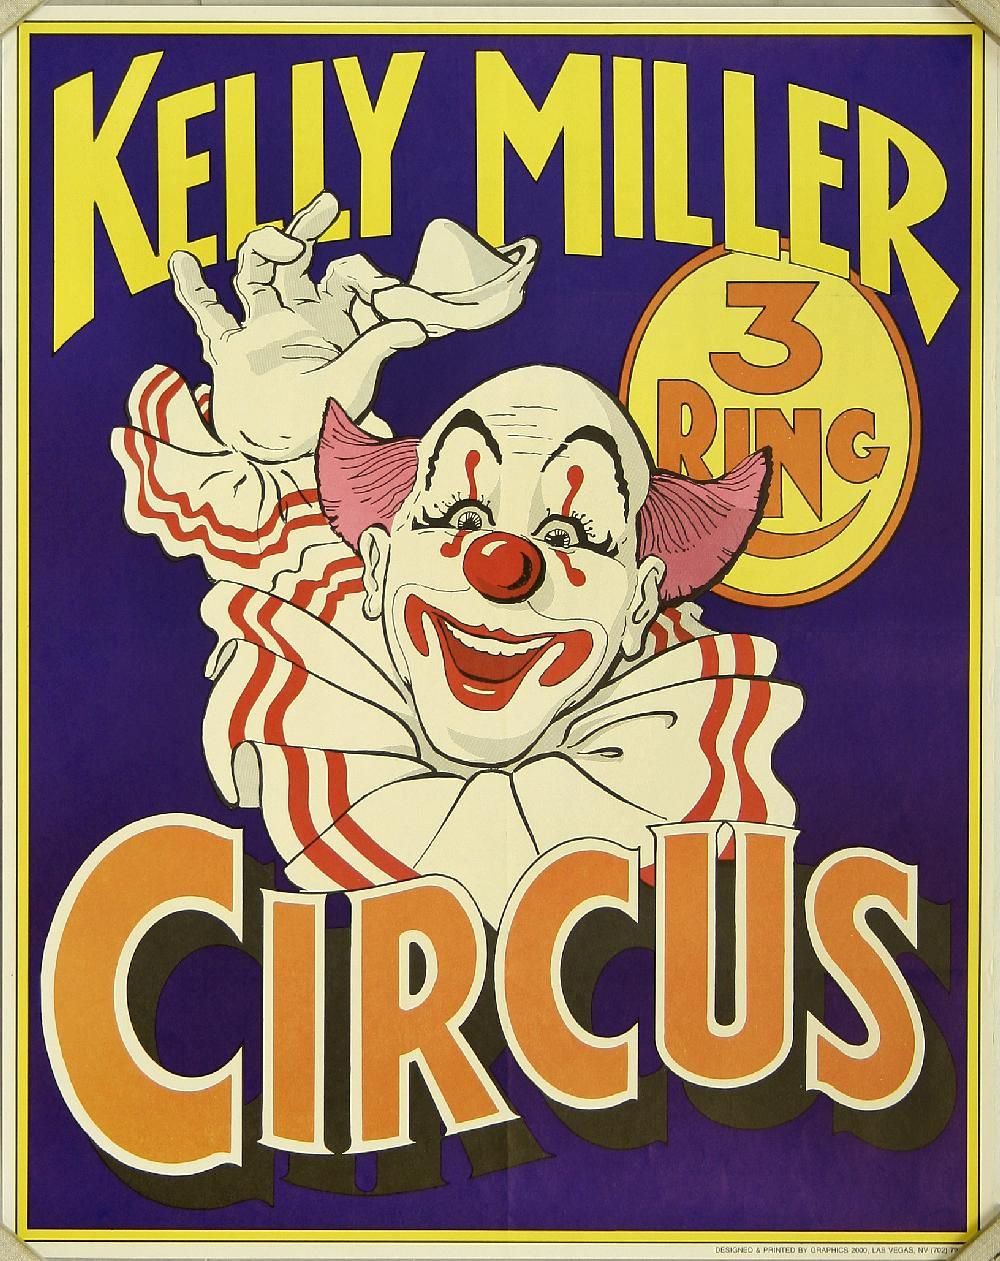 Kelly Miller 3 Ring Circus Clown Tipping Hat Vintage PostersCircus